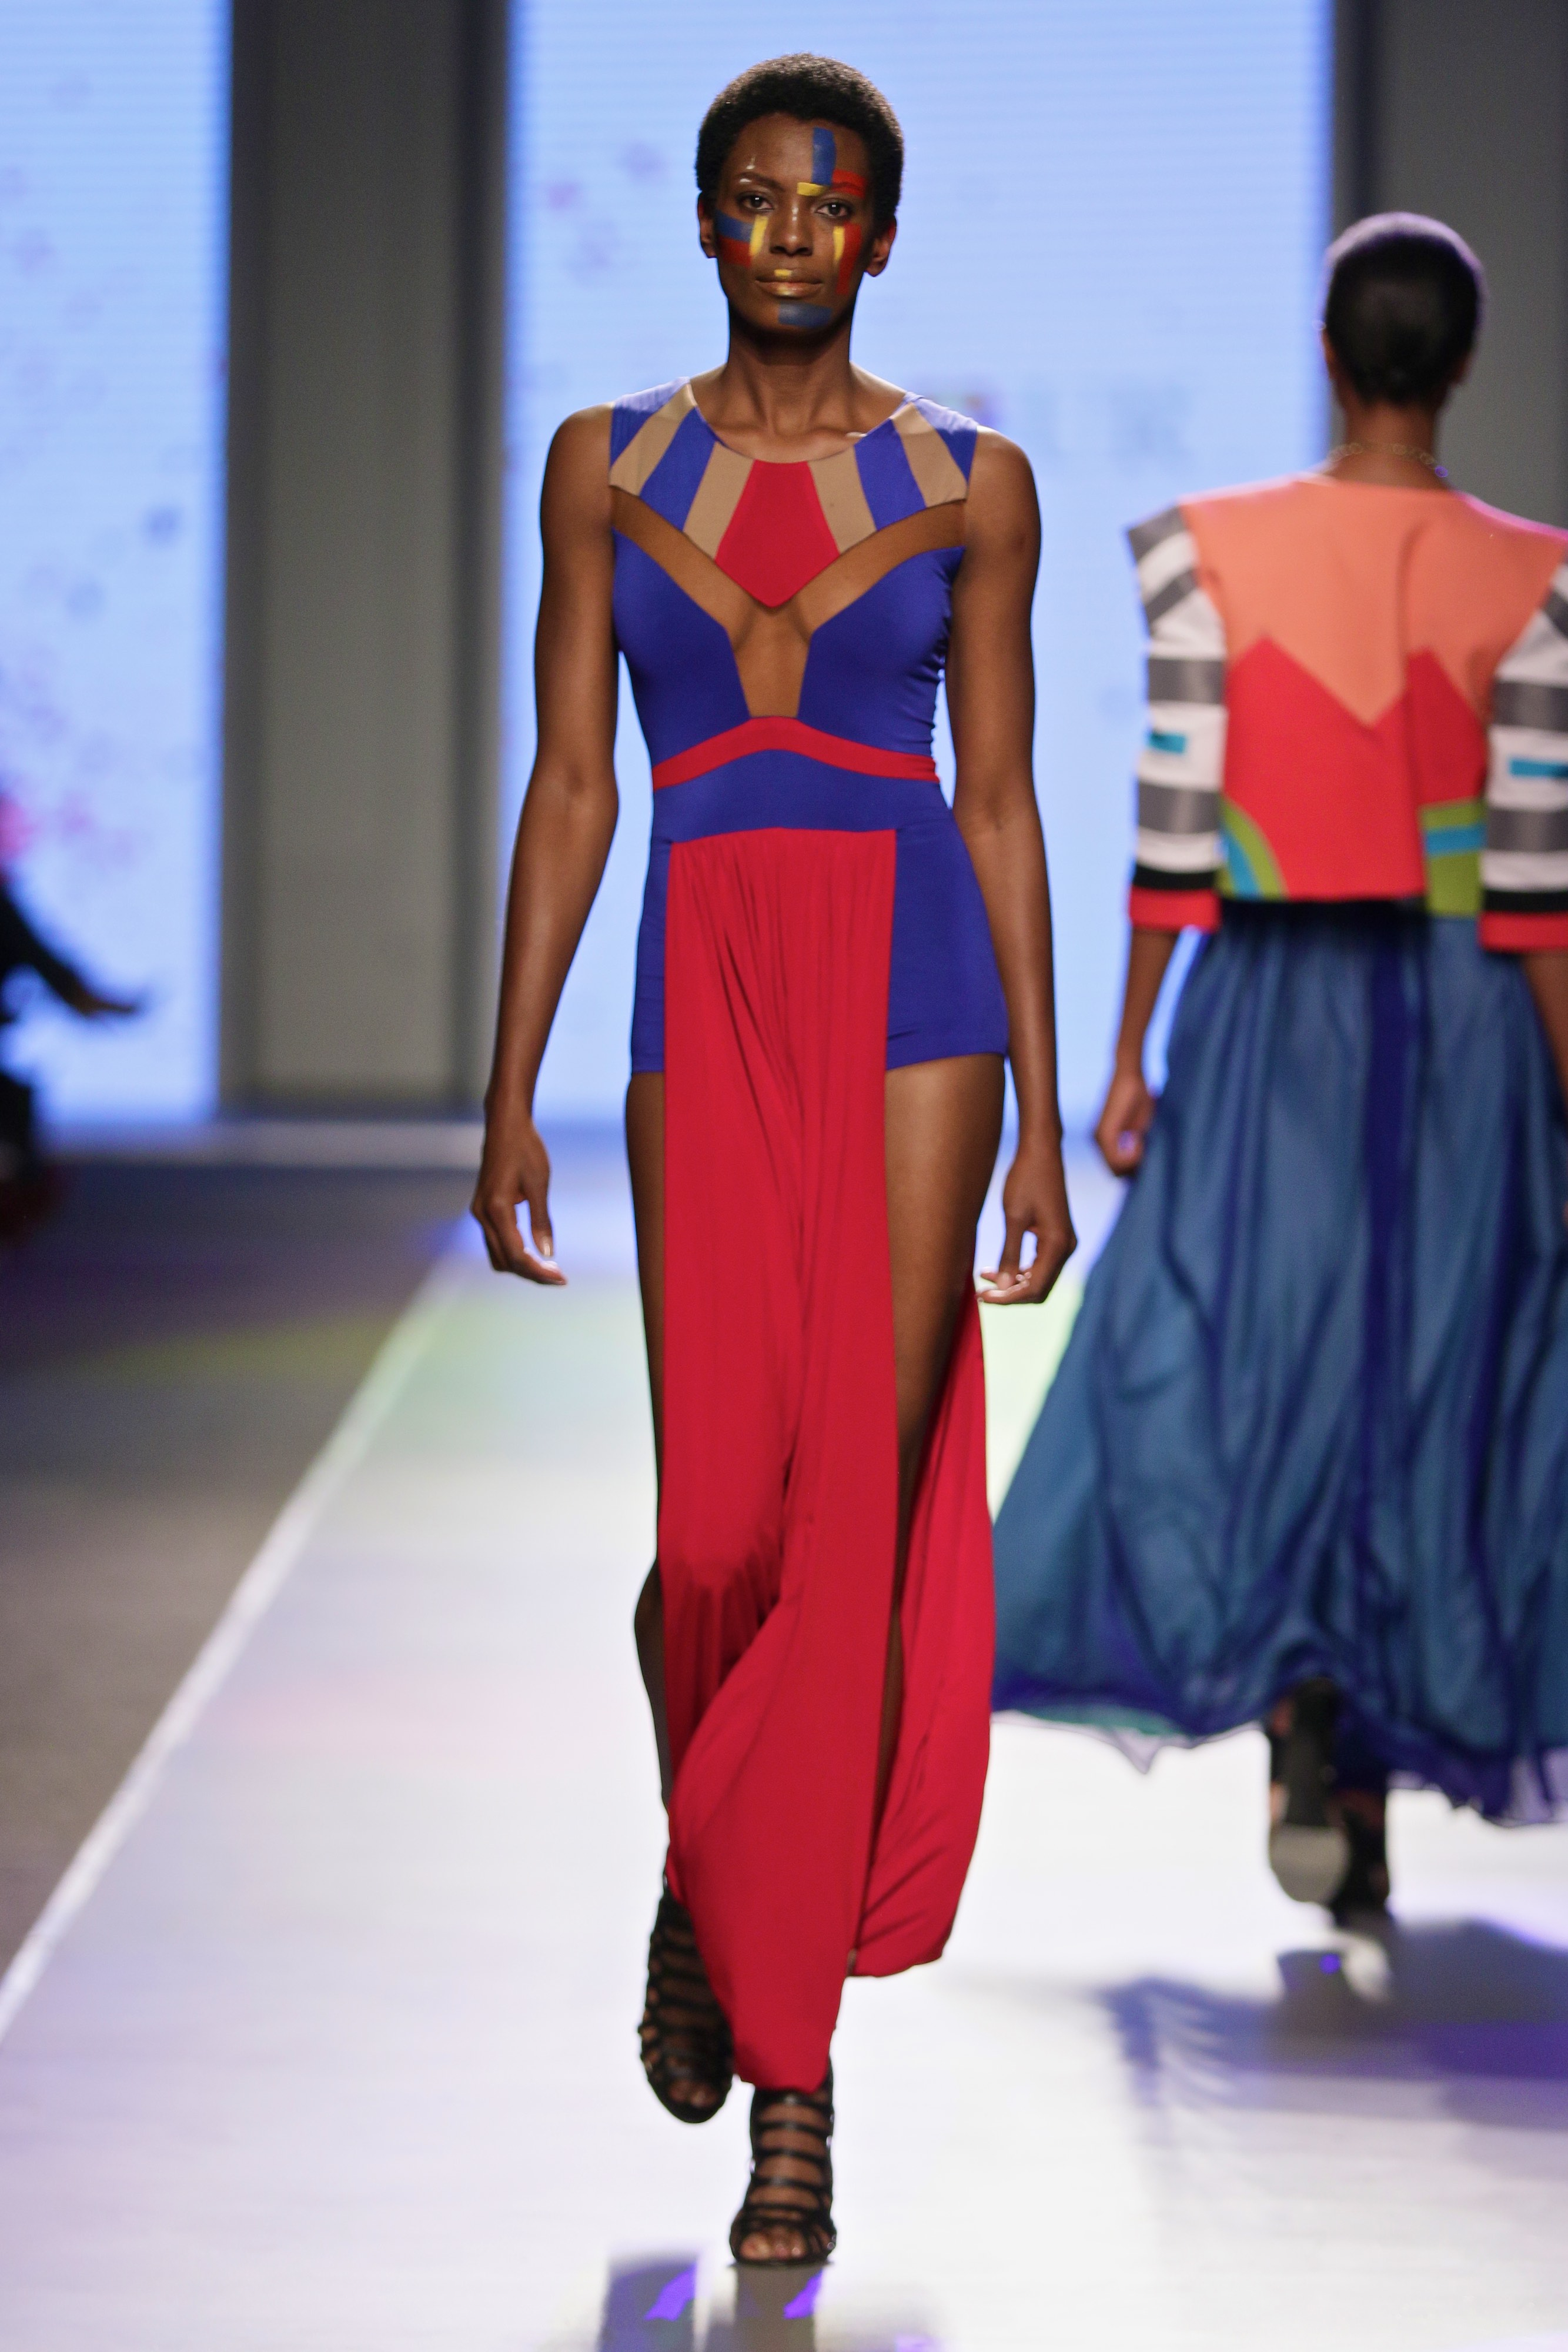 Highlights From #MBFWJ...